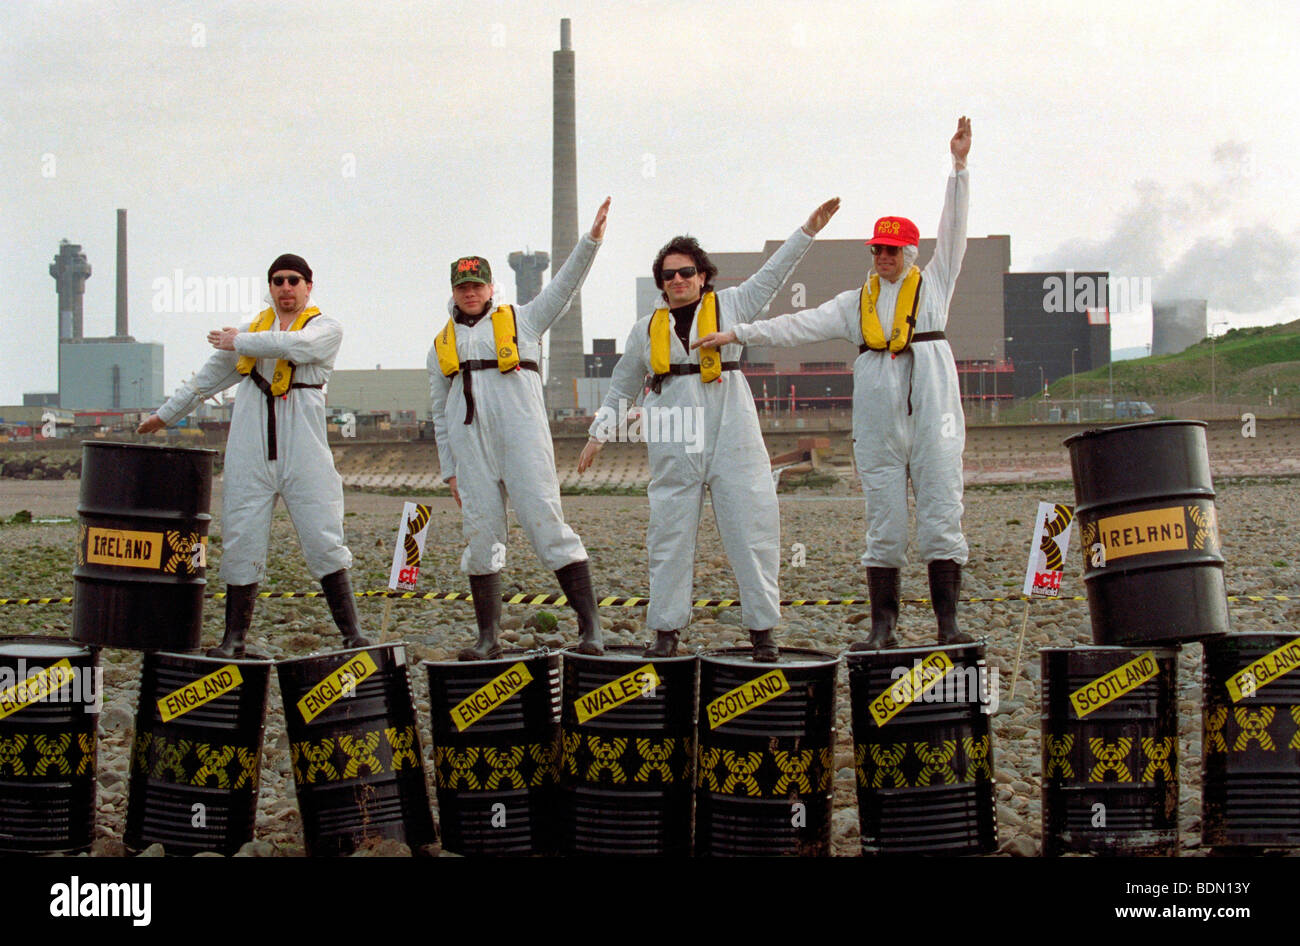 Irish rock band U2 joins Greenpeace protest against the new THORP nuclear plant due to open in 1992. - Stock Image